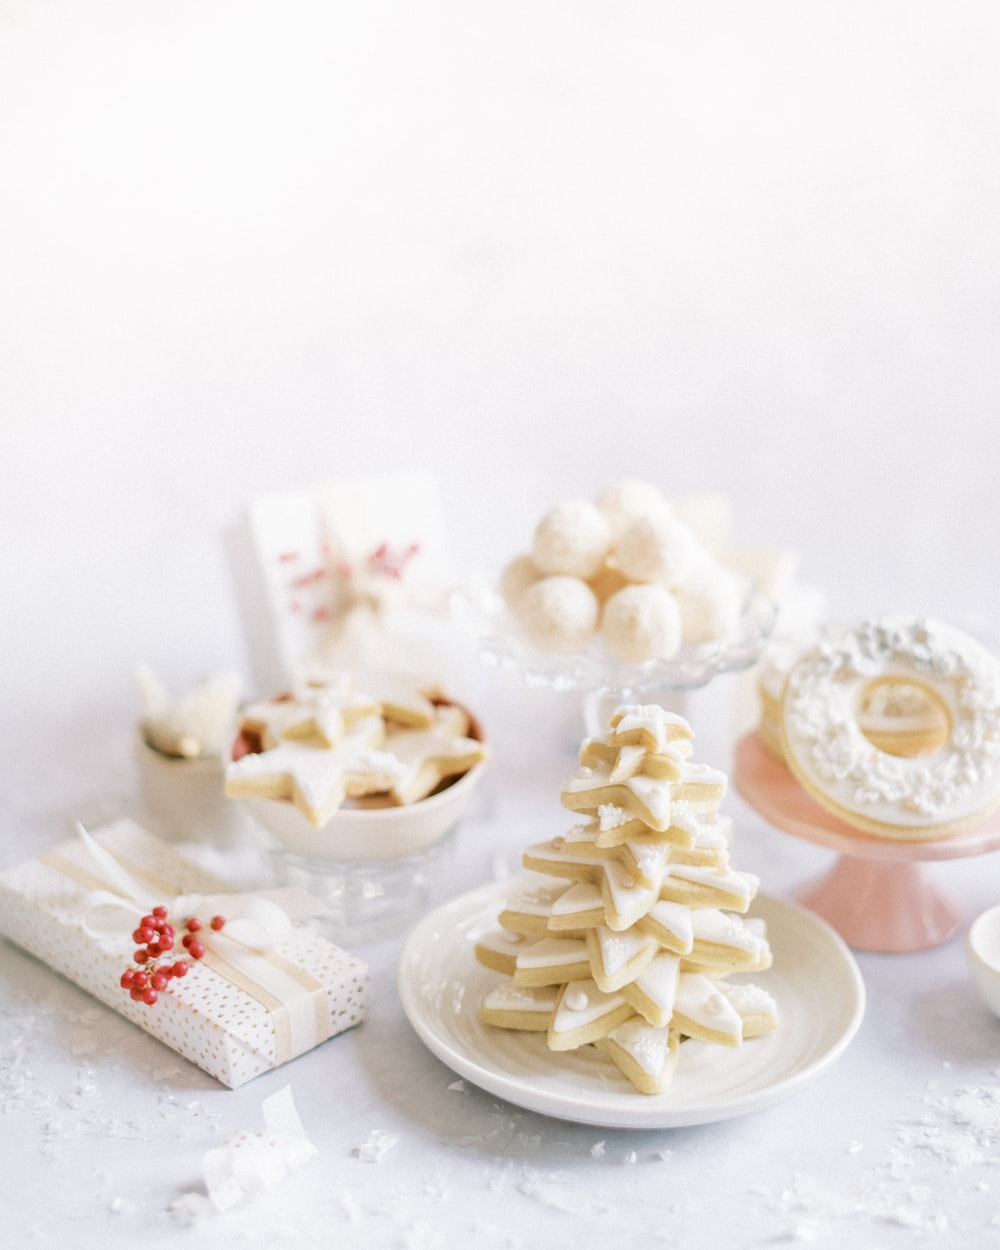 white and brown cupcakes on white ceramic plate